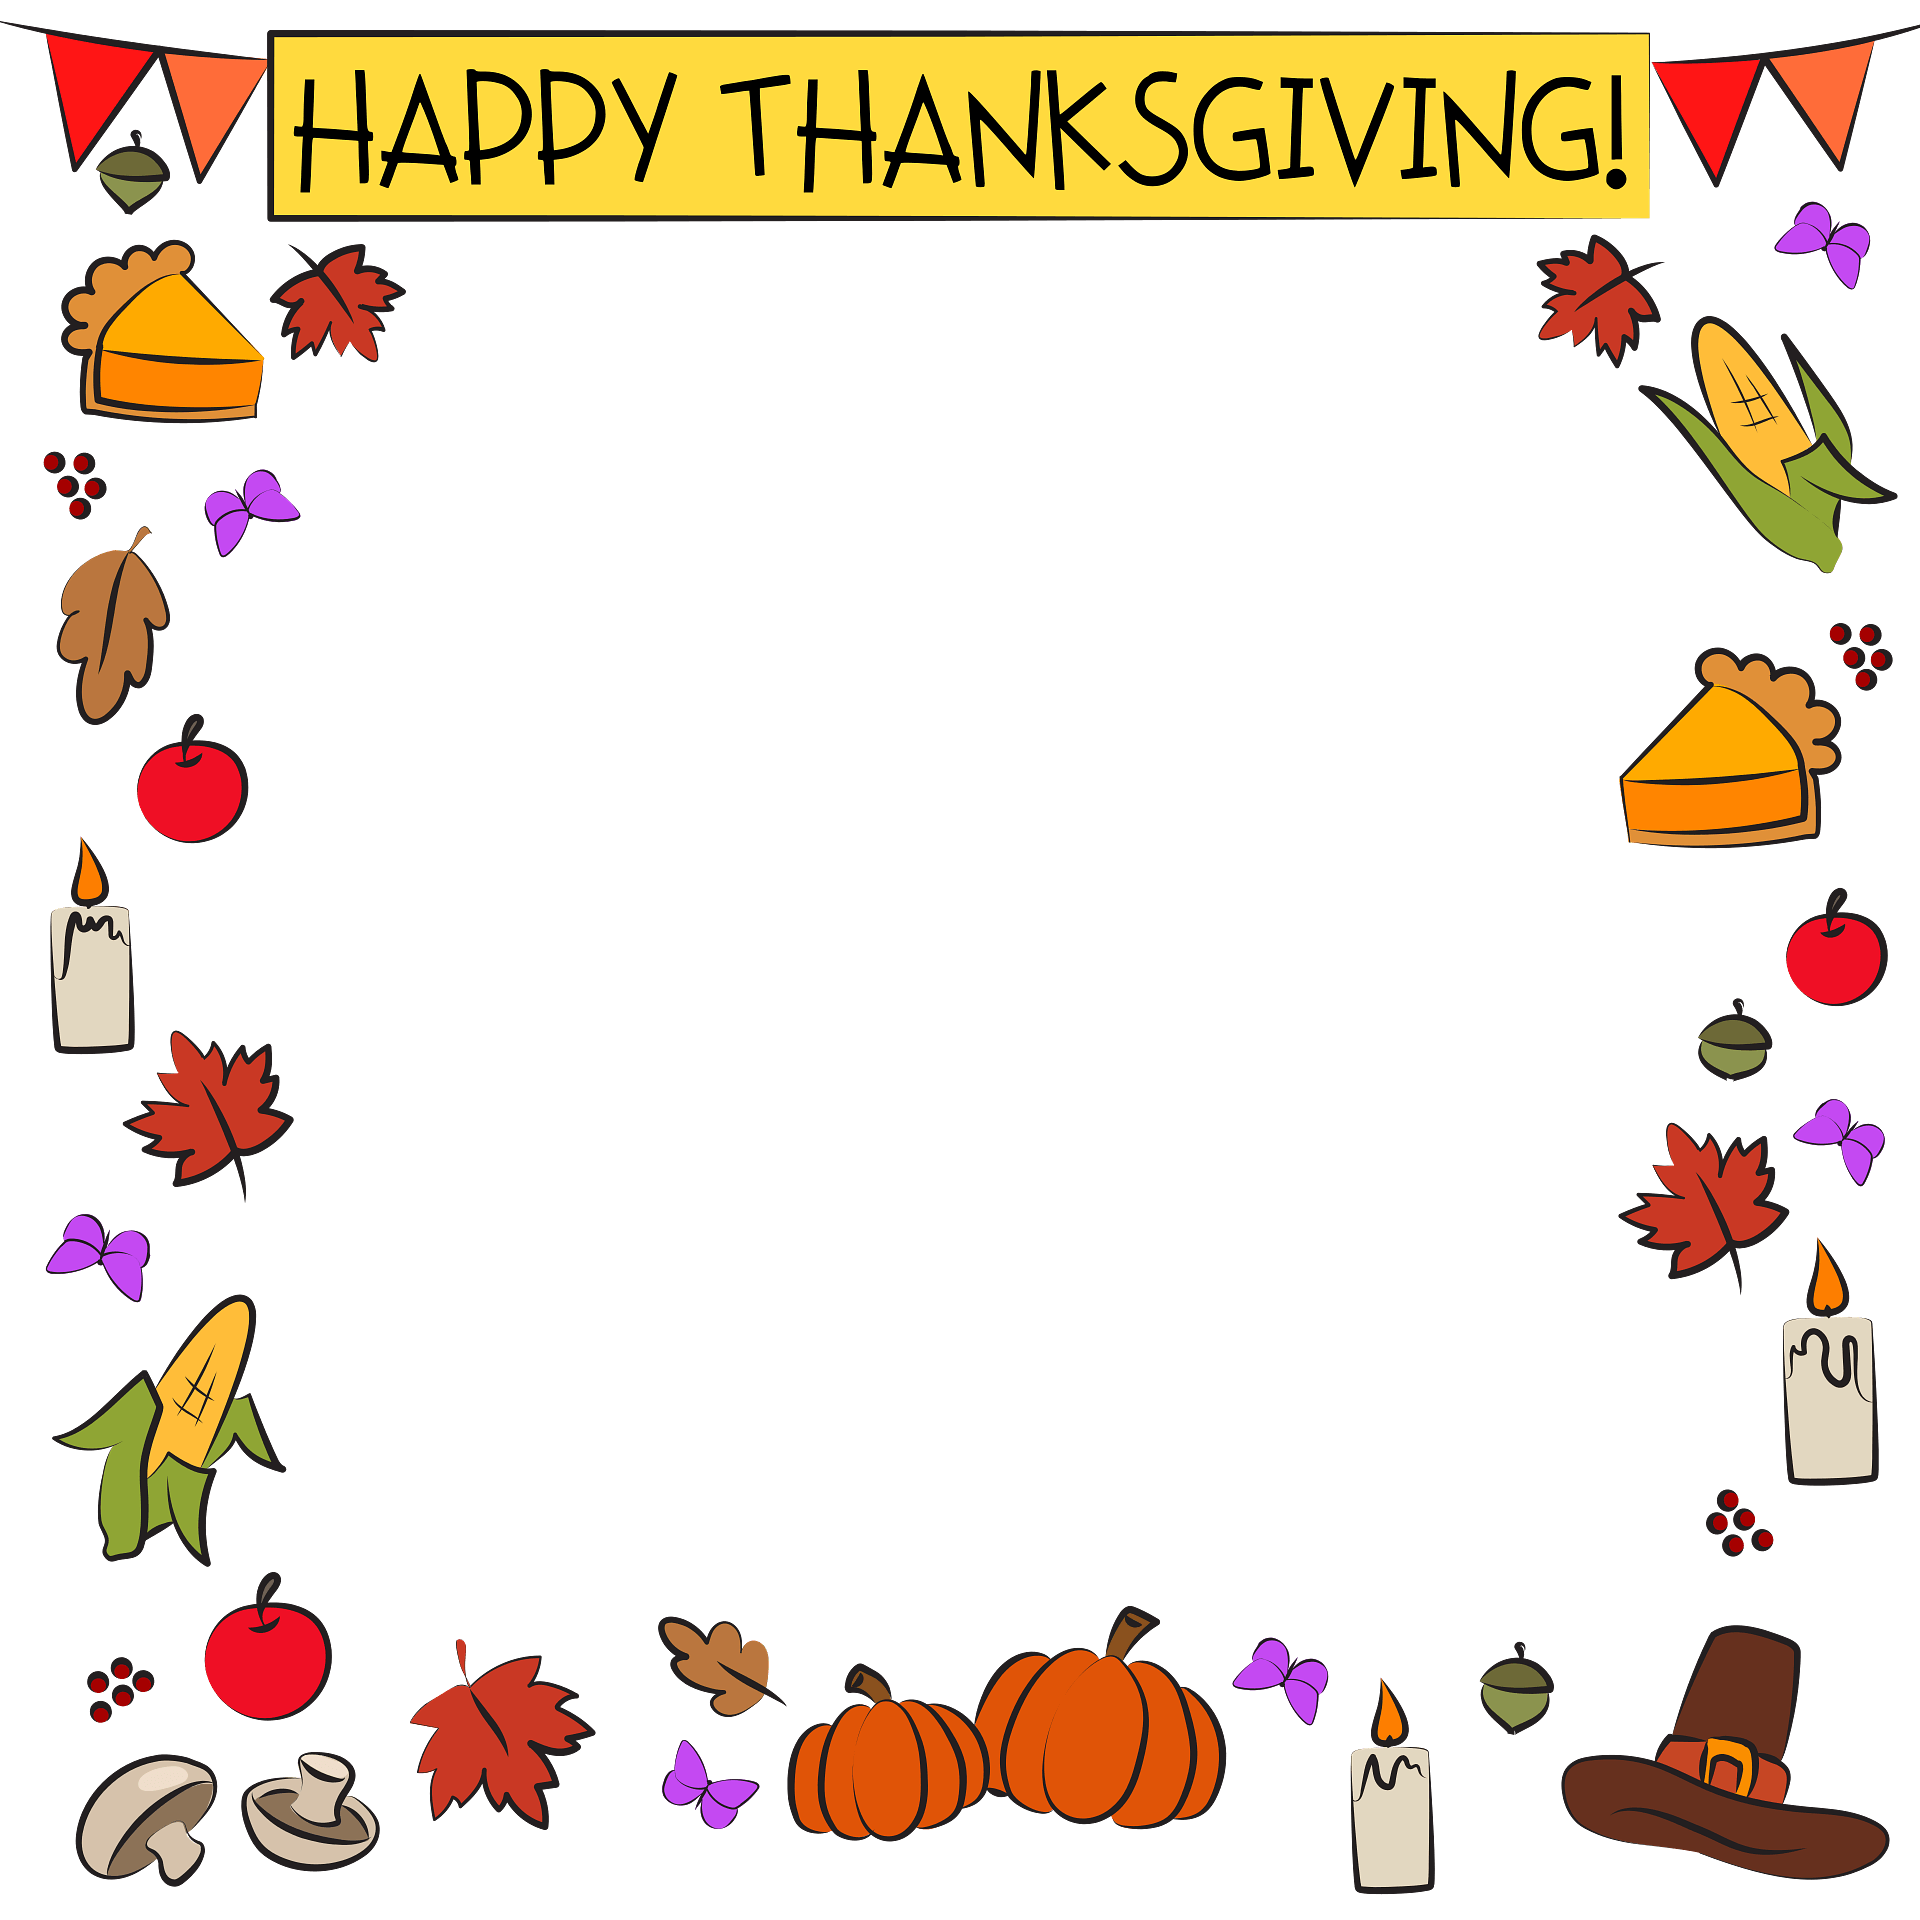 Thanksgiving Border Clipart Free Download Transparent Png Creazilla Preview sewing information for #hd581. thanksgiving border clipart free